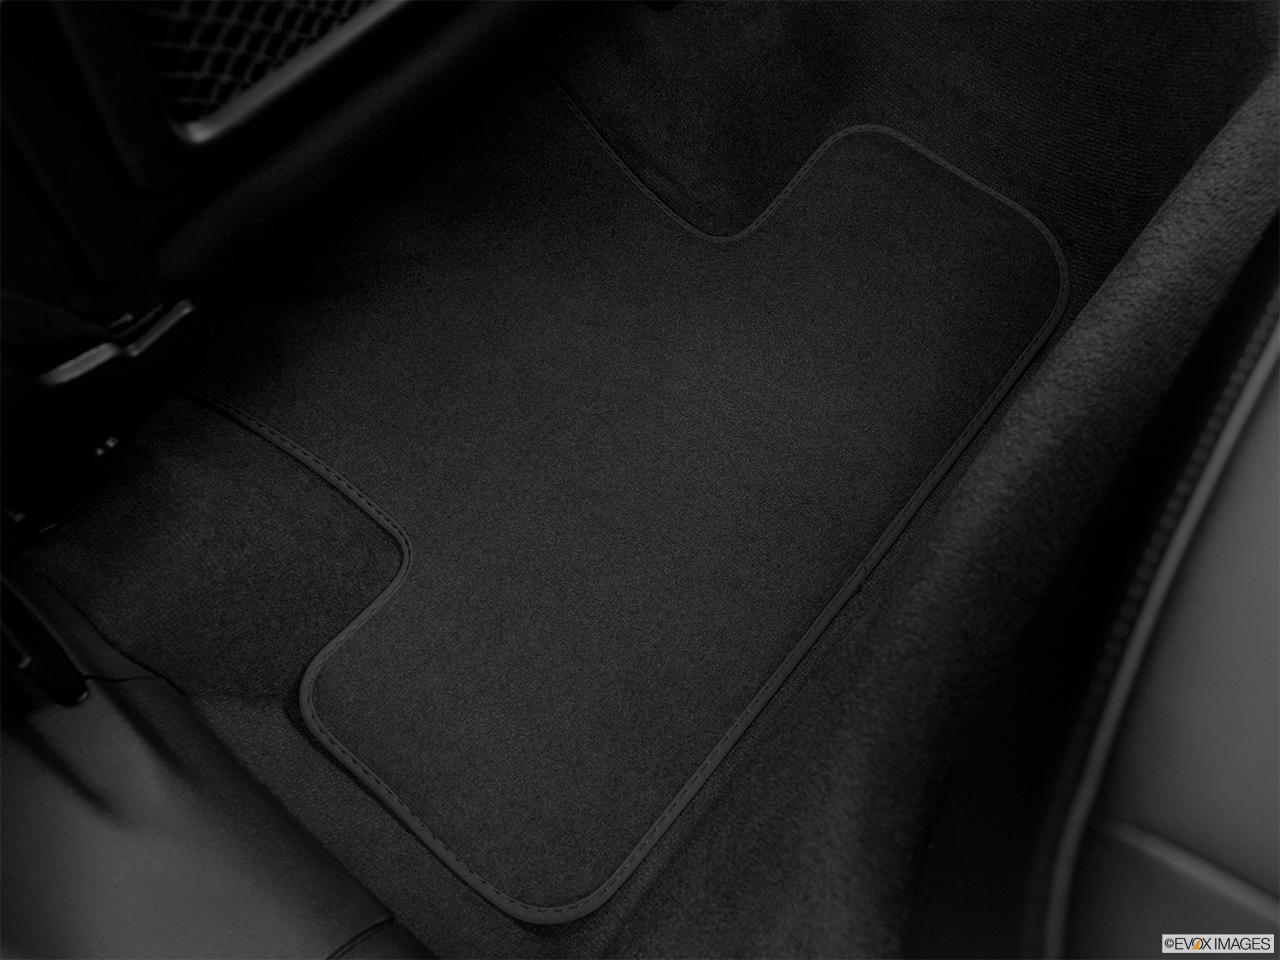 2014 Audi Q5 Hybrid 2.0 TFSI Prestige Rear driver's side floor mat. Mid-seat level from outside looking in.